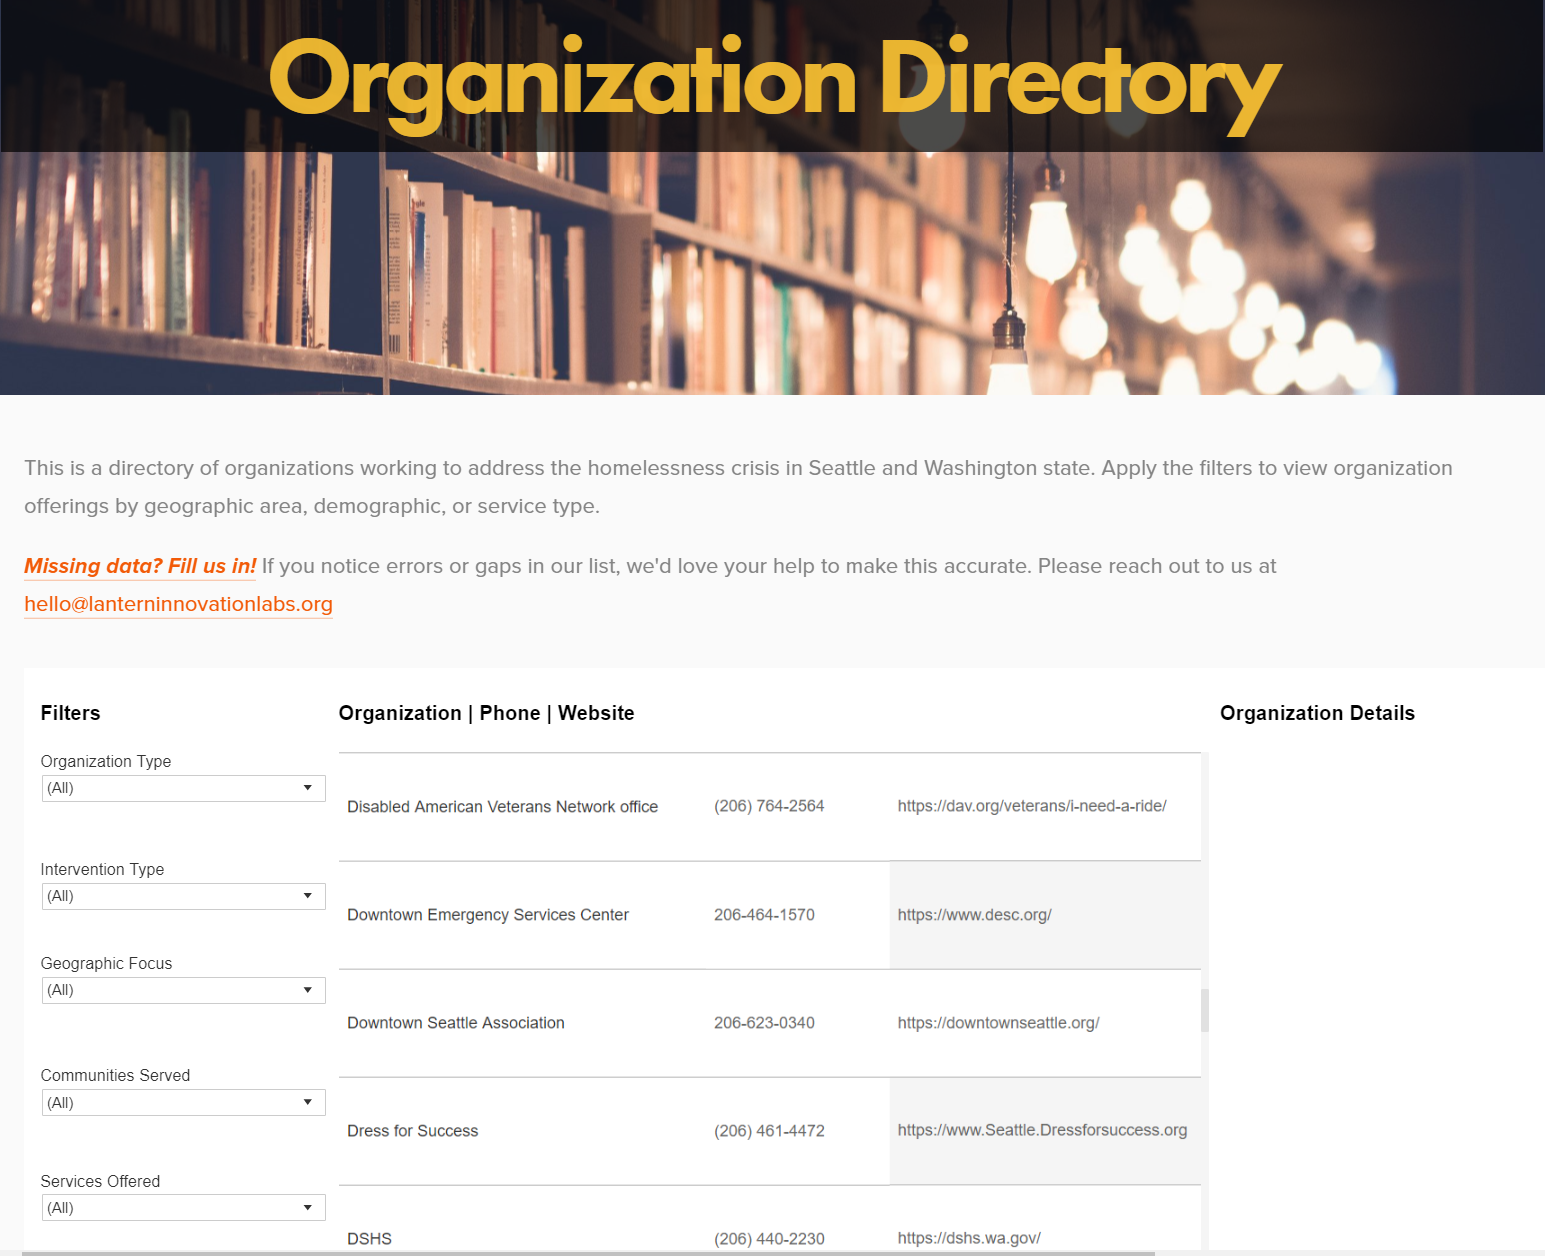 Building a directory - of organizations working to address homelessness